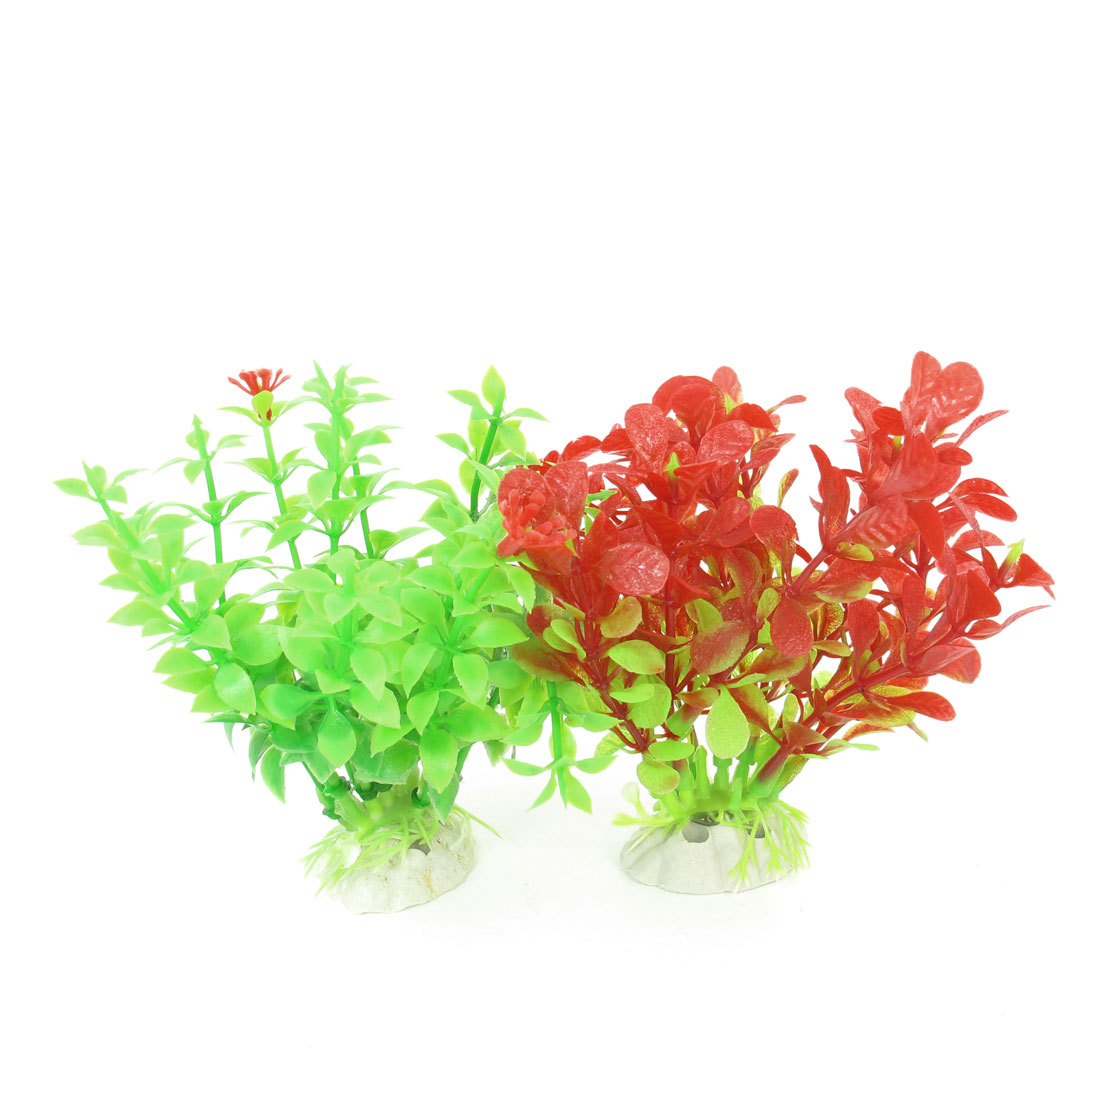 "2 Pcs Red Green Emulational Fish Tank Aquarium Grasses Decor 4.5"" High"